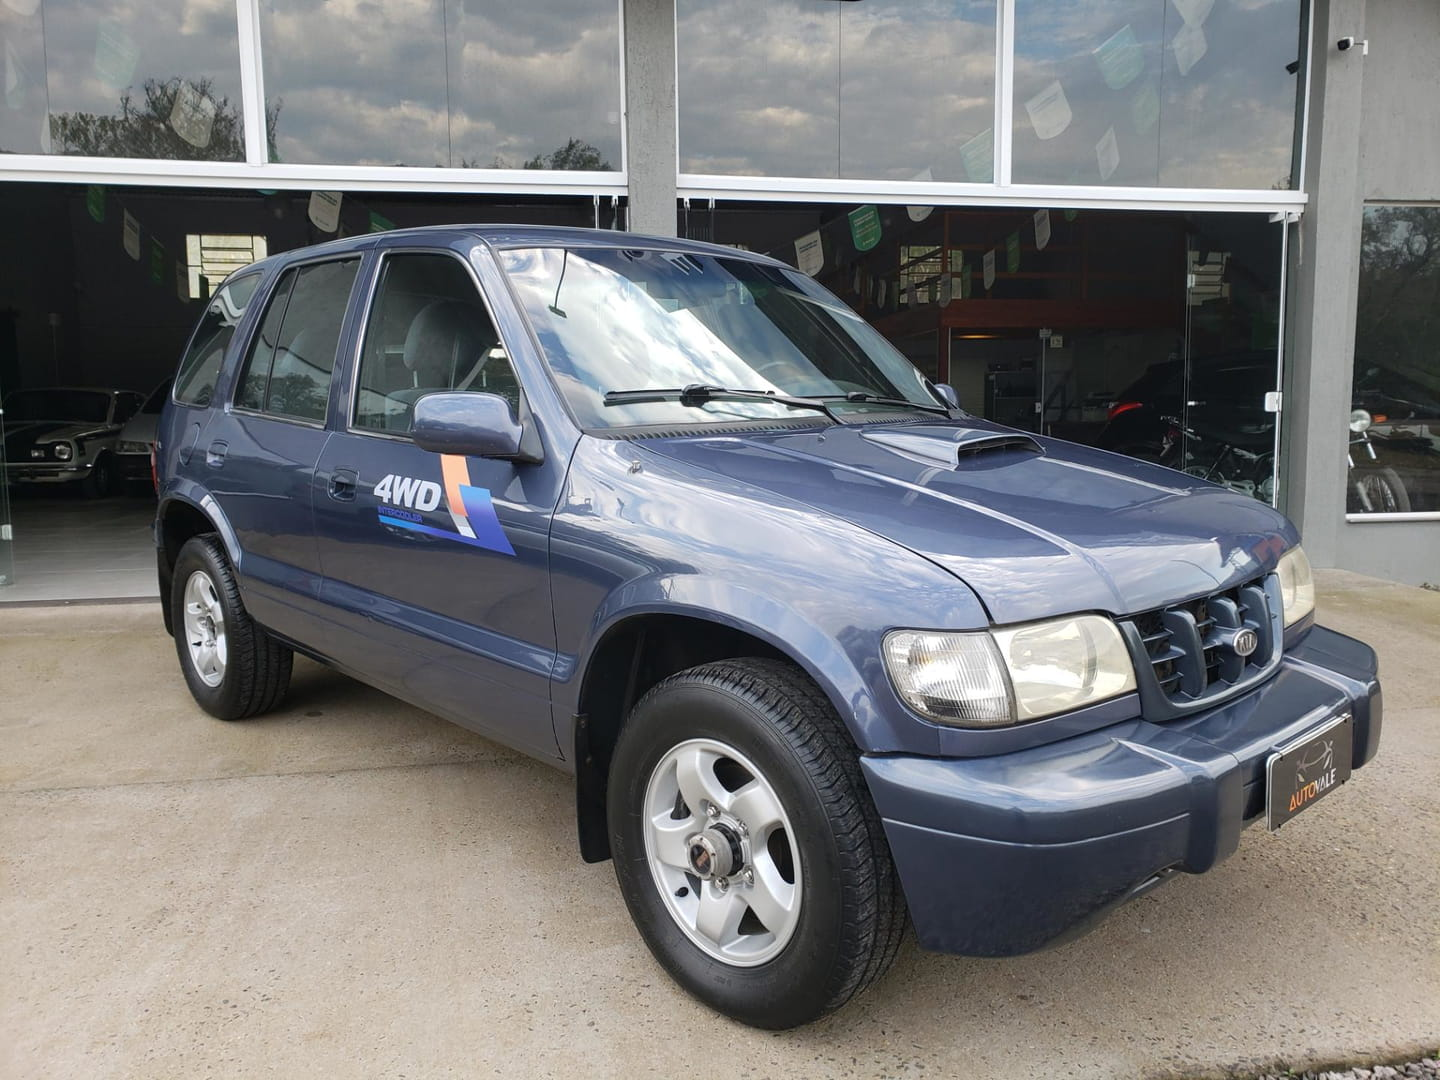 sportage 4x4 2.0d tbic 4p 2003 vale real